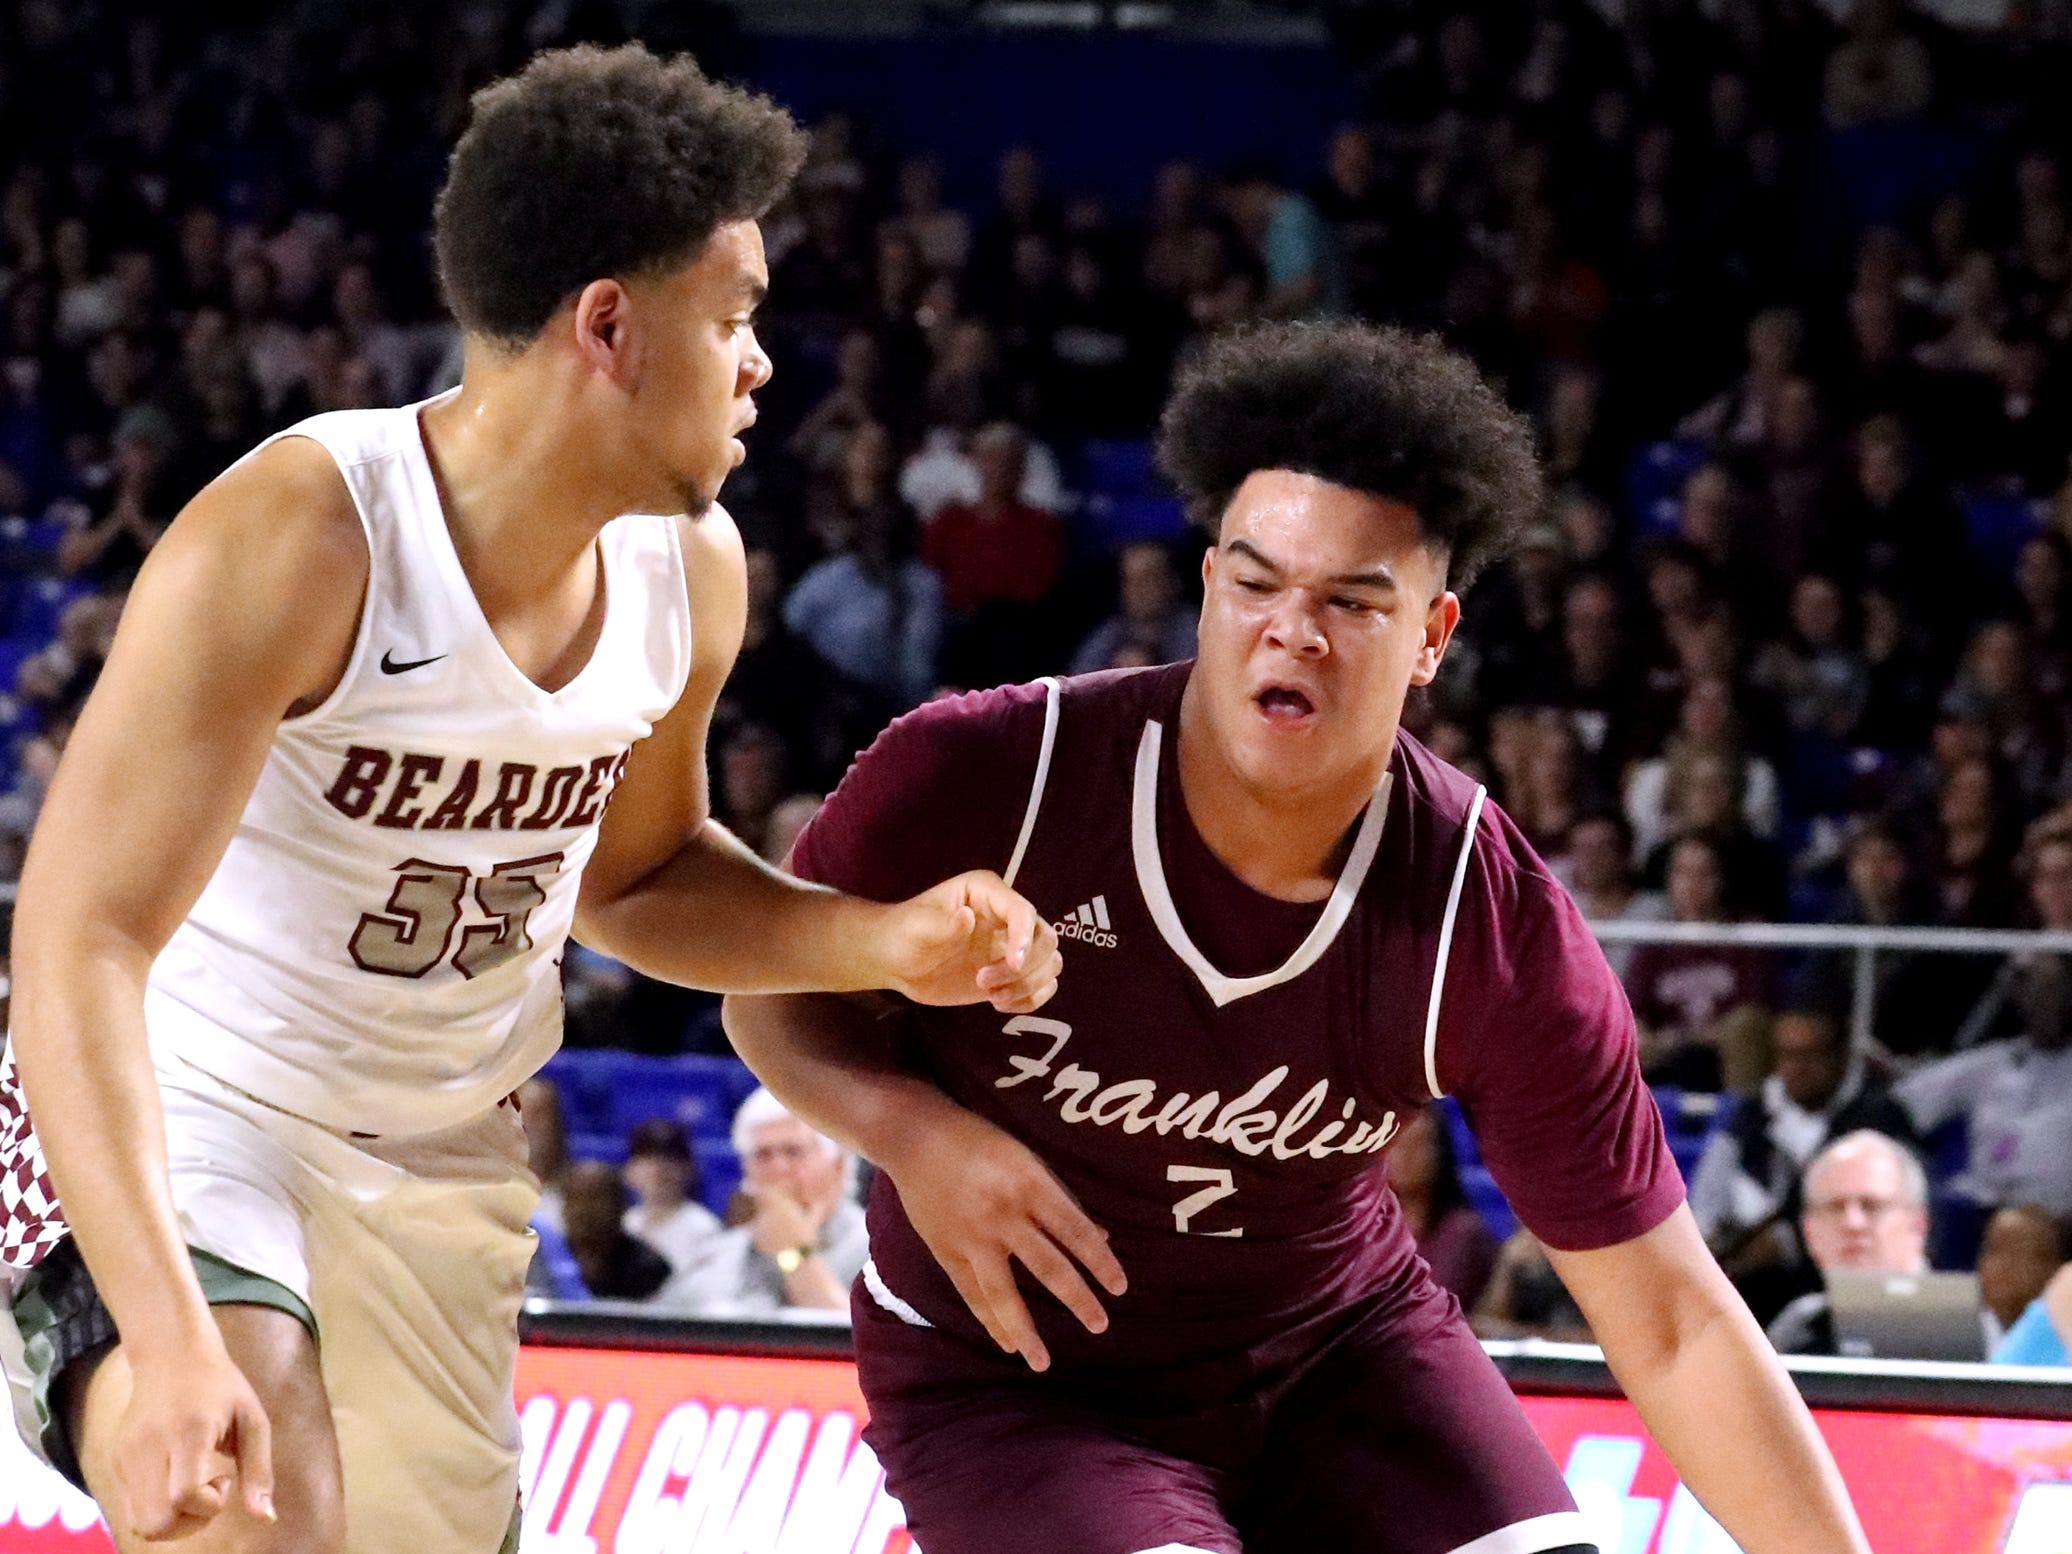 Franklin's Ahsharri Haynesworth (2) drives to the basket as Bearden's Shamarcus Brown (35) guards him during the quarterfinal round of the TSSAA Class AAA Boys State Tournament, on Wednesday, March 13, 2019, at Murphy Center in Murfreesboro, Tenn.